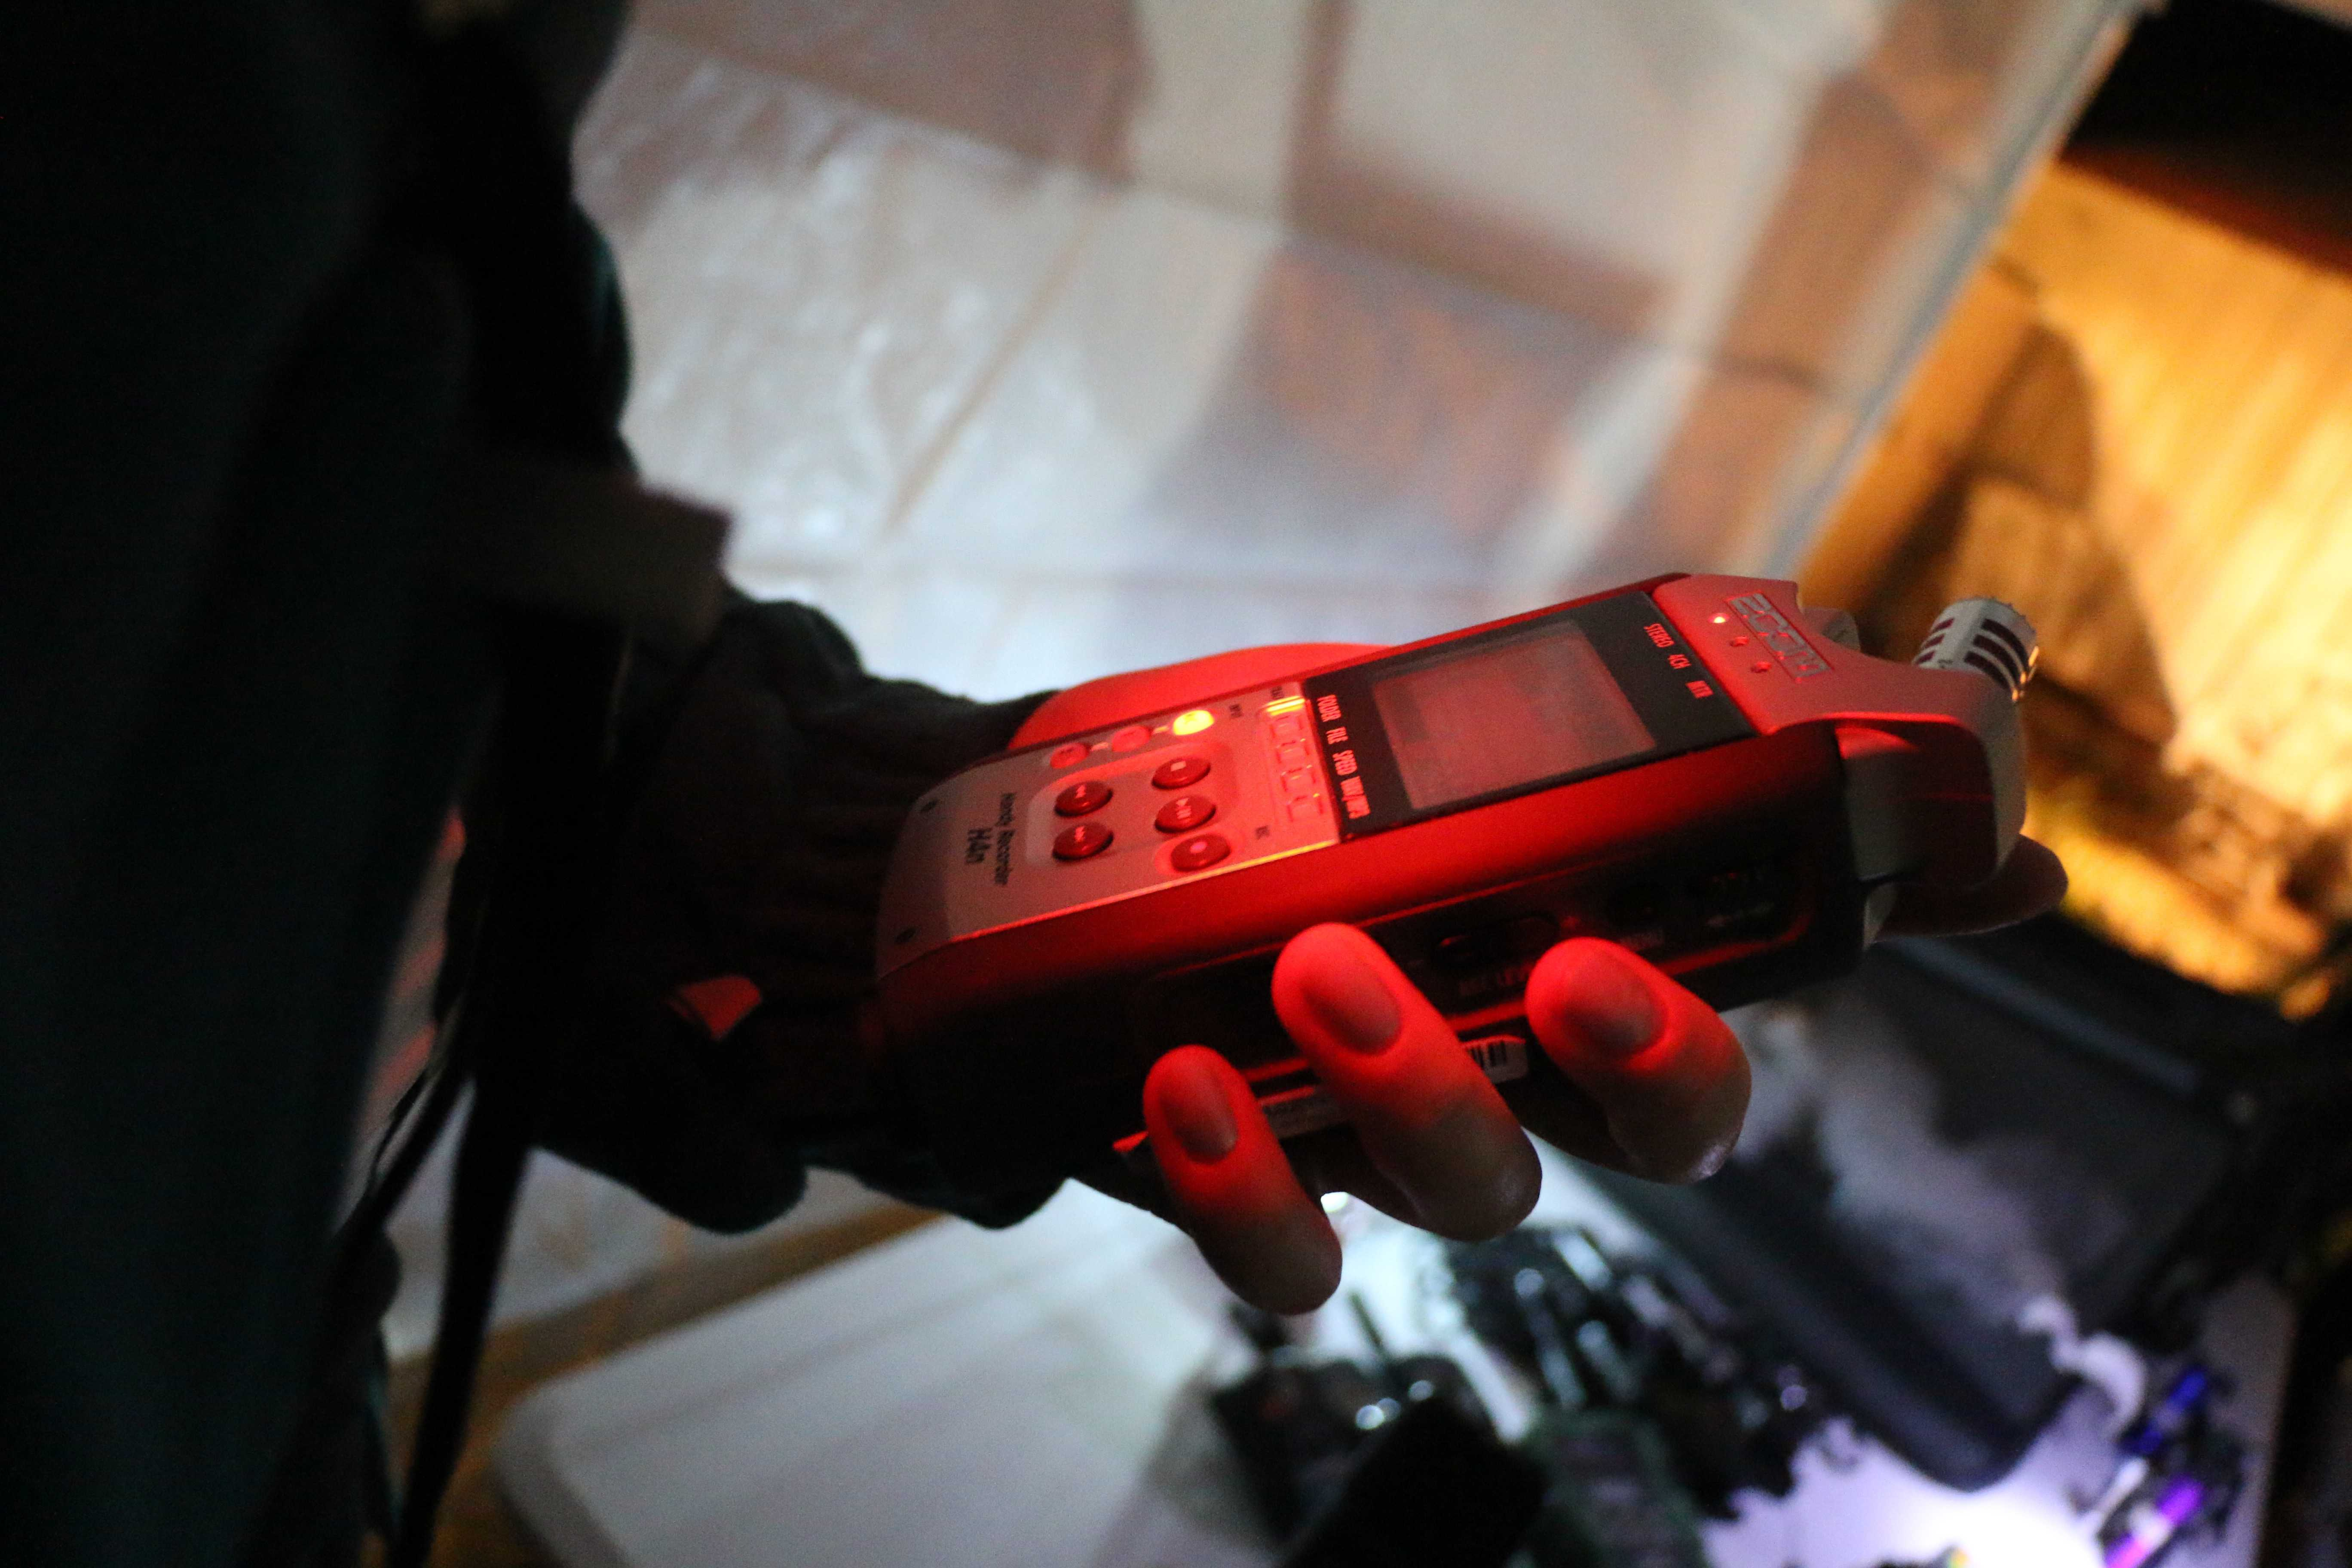 Equipment+used+by+WIPIT+to+track+paranormal+activity.+Photo+by+Amber+Levehagen